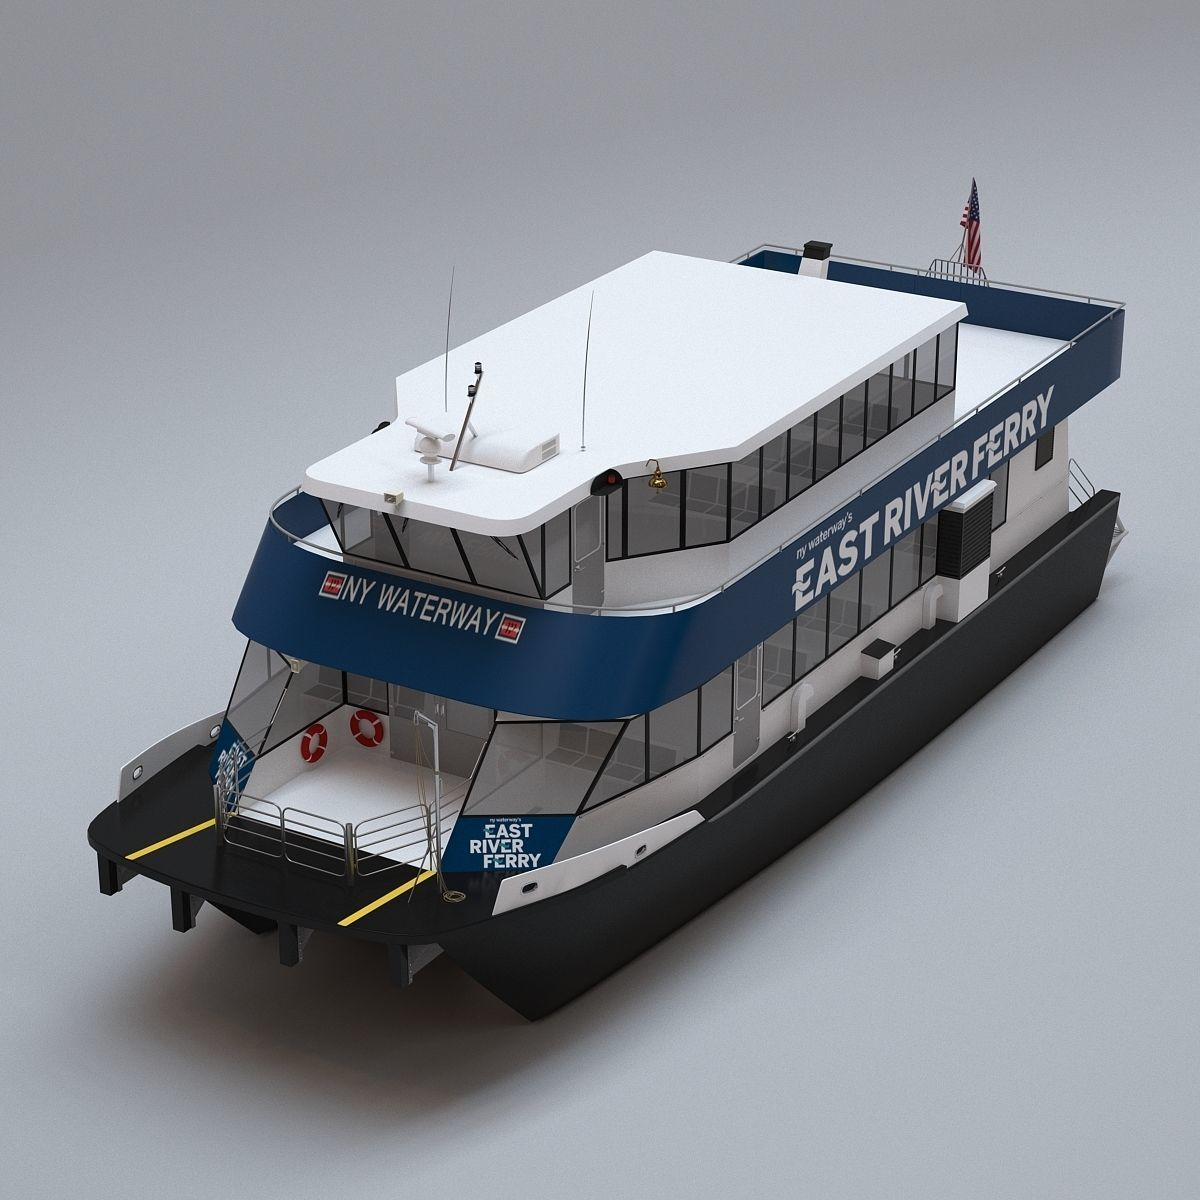 New York East River Ferry Boat